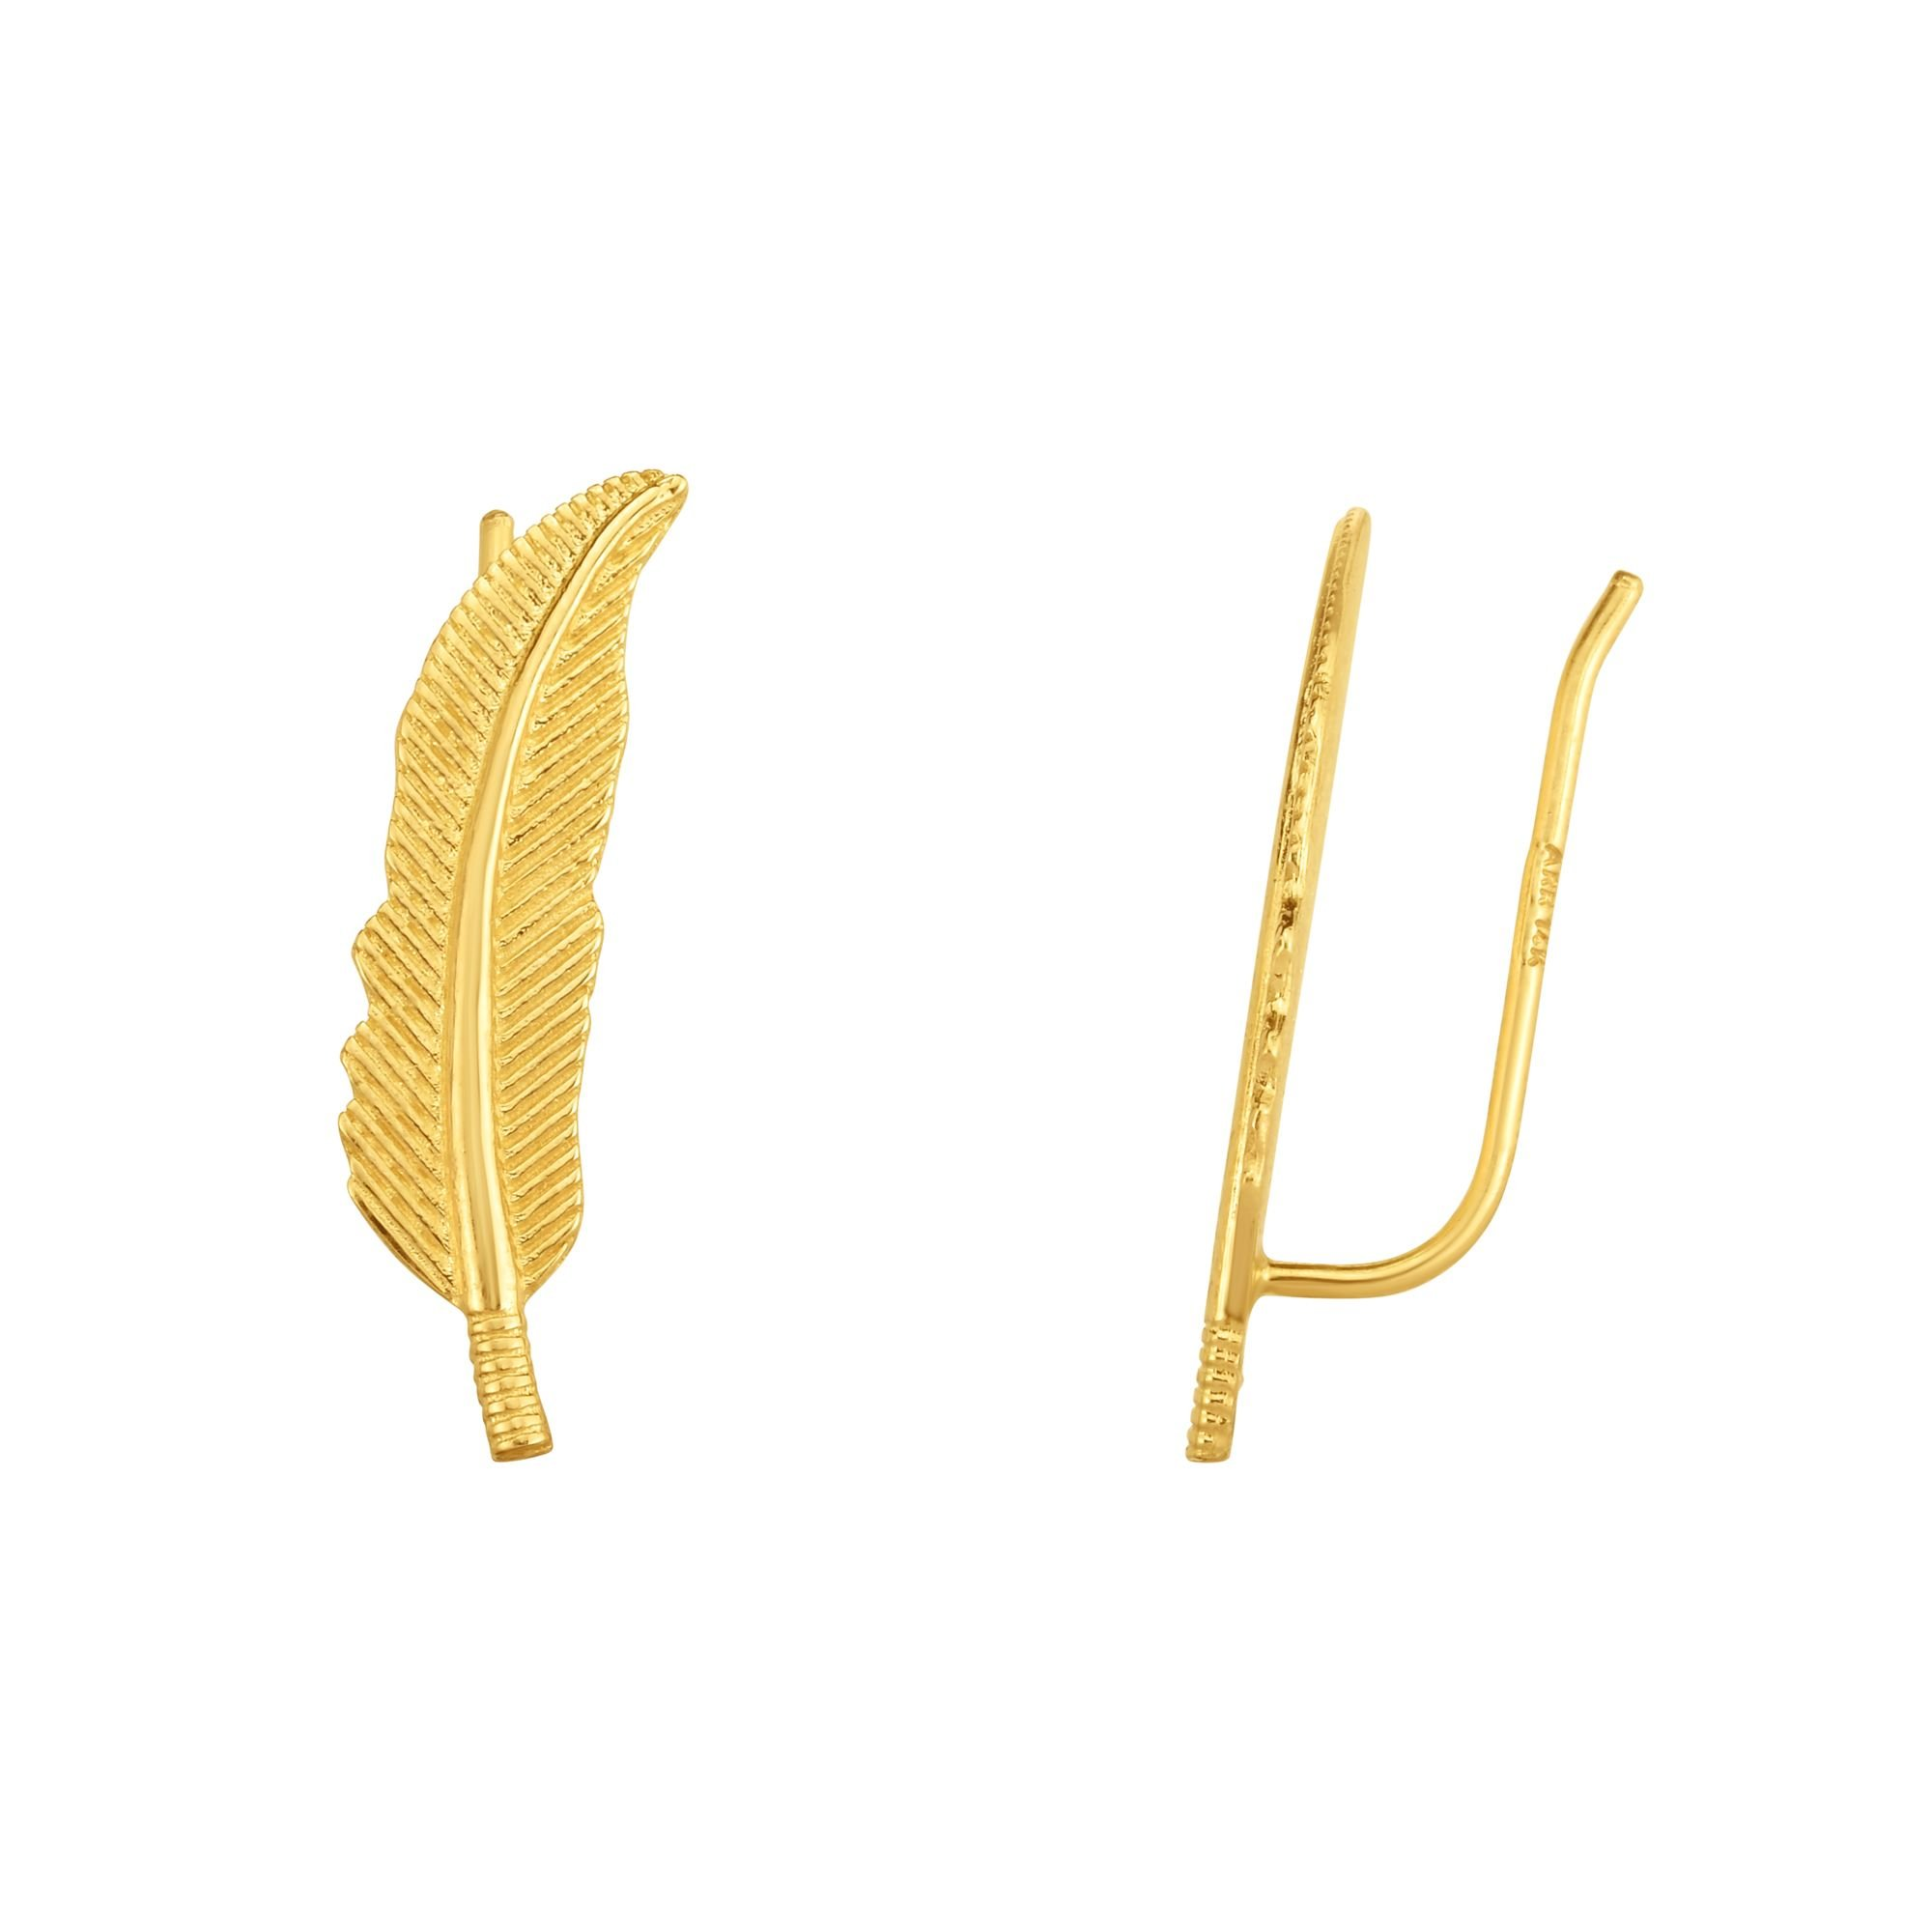 JewelStop 14k Yellow Gold 6x22mm Shiny And Textured Leaf Ear Climber Earrings